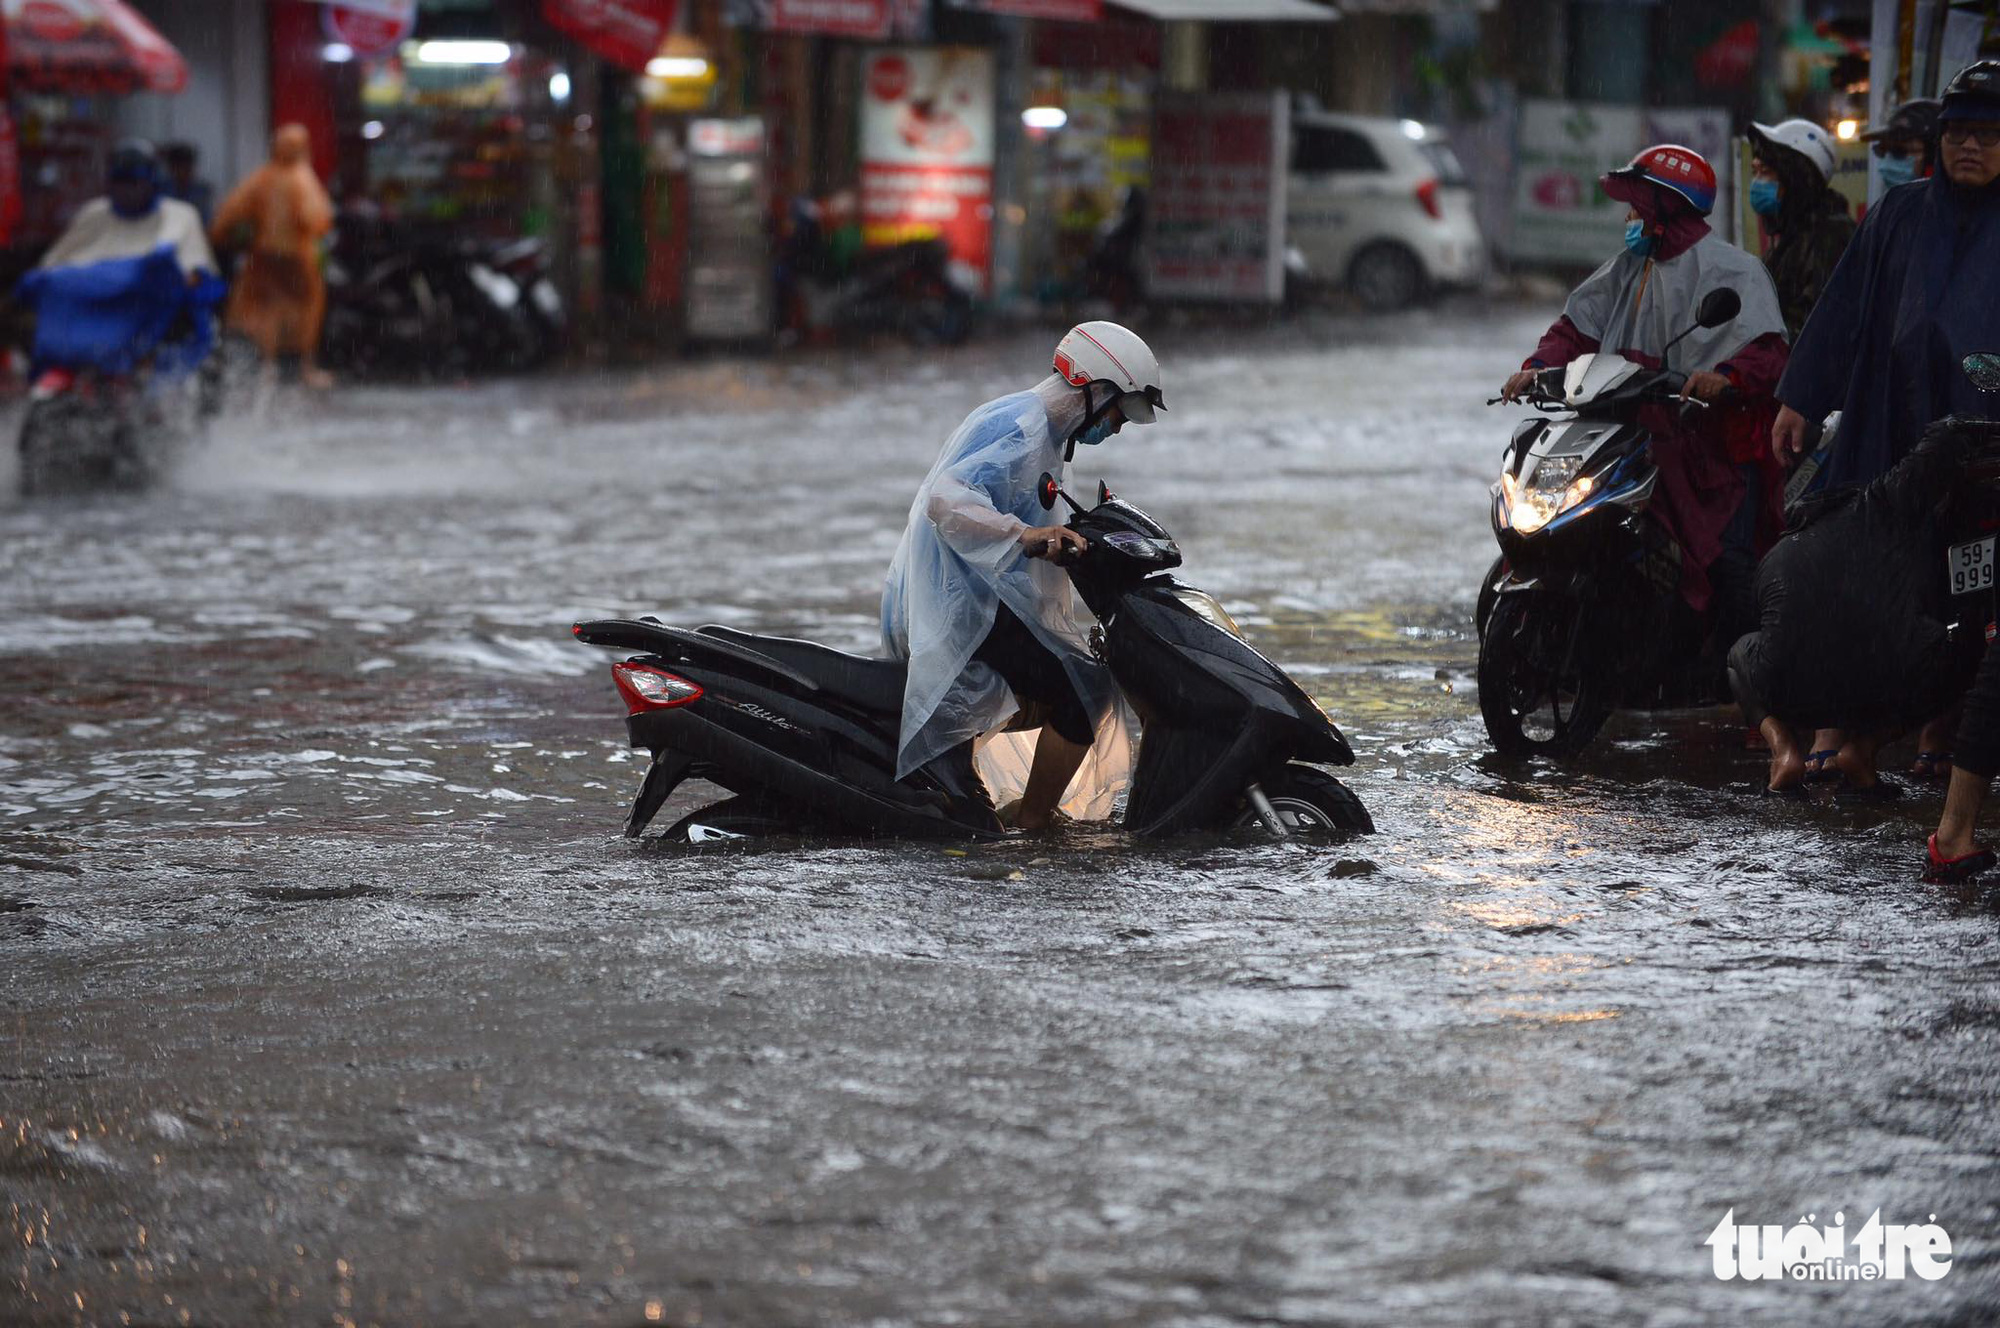 A motorbike breaks down in heavy rain on a flooded street in Ho Chi Minh City, June 16, 2020. Photo: Quang Dinh / Tuoi Tre